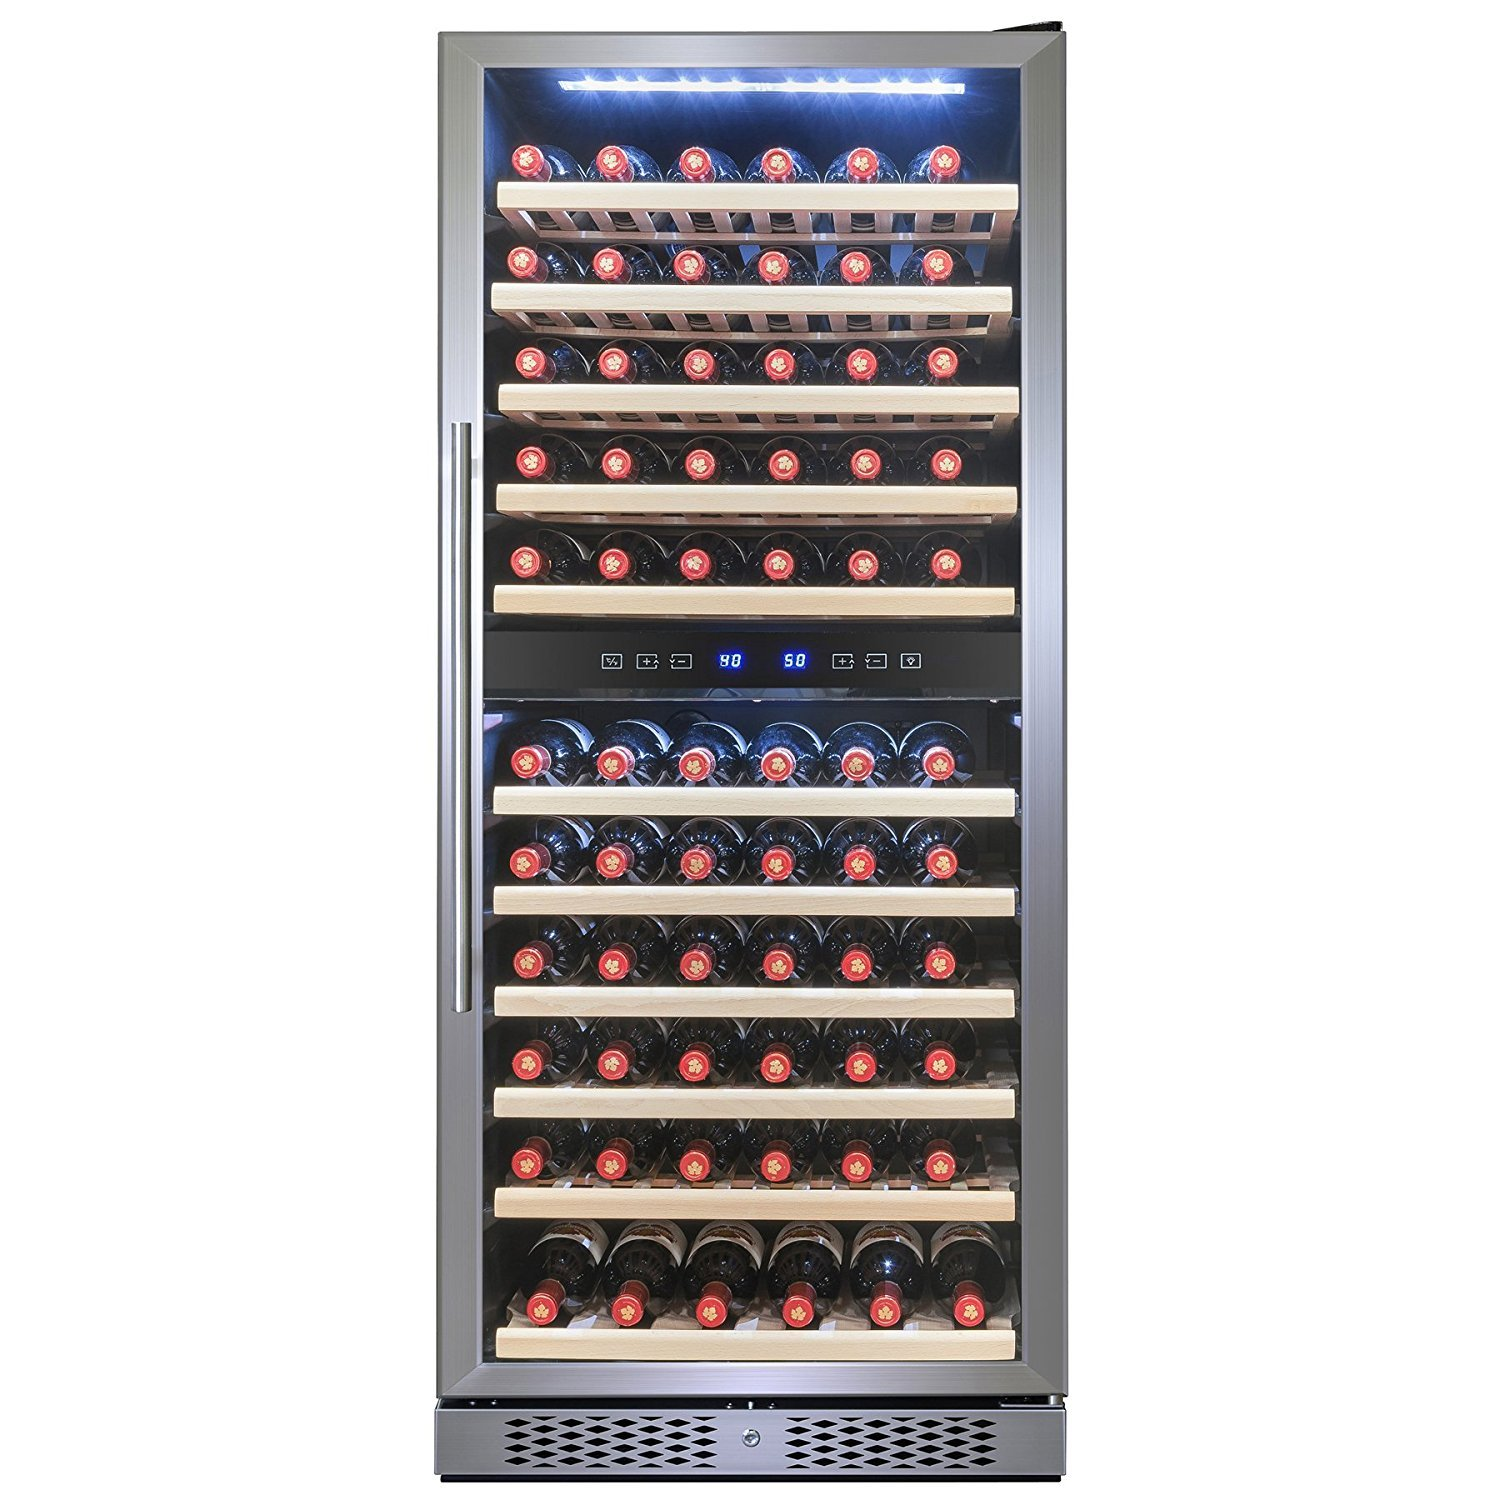 FIREBIRD 116 Bottle Dual Zone Freestanding Electric Wine Cooler Chiller Refrigerator w/ Touch Control Built-in Compressor